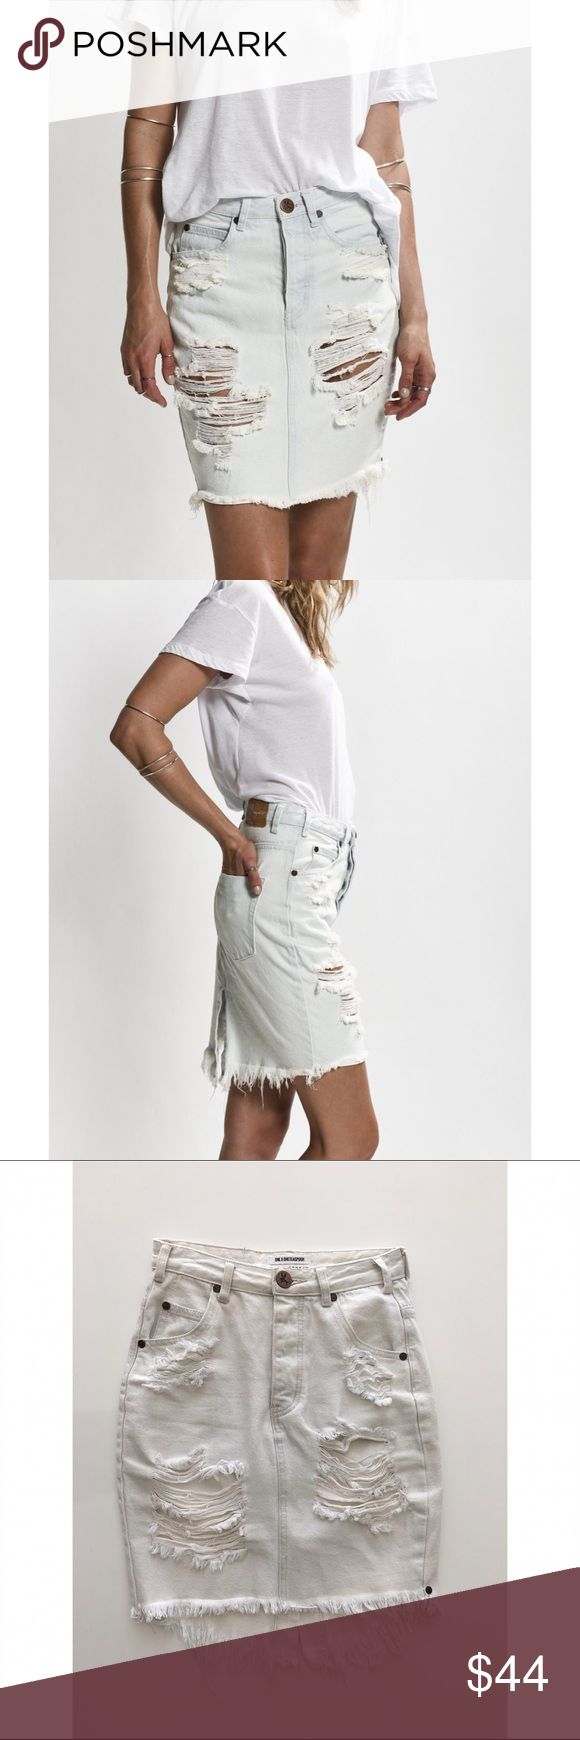 One Teaspoon Le Creme 2020 Distressed Skirt 2020 is a mid to high waist super slim fit mid length pencil skirt. Feminine curved raw hem with split at centre back. Mostly heavily distressed through the front panels exposing the pocket lining but can vary depending on the wash. Pre-shrunk classic 5 pocket style with a signature bird button closure. 12 oz Rigid Denim Mid to high waist Slim pencil style La Creme is a classic super bleached light cream wash with authentic distressing. One…